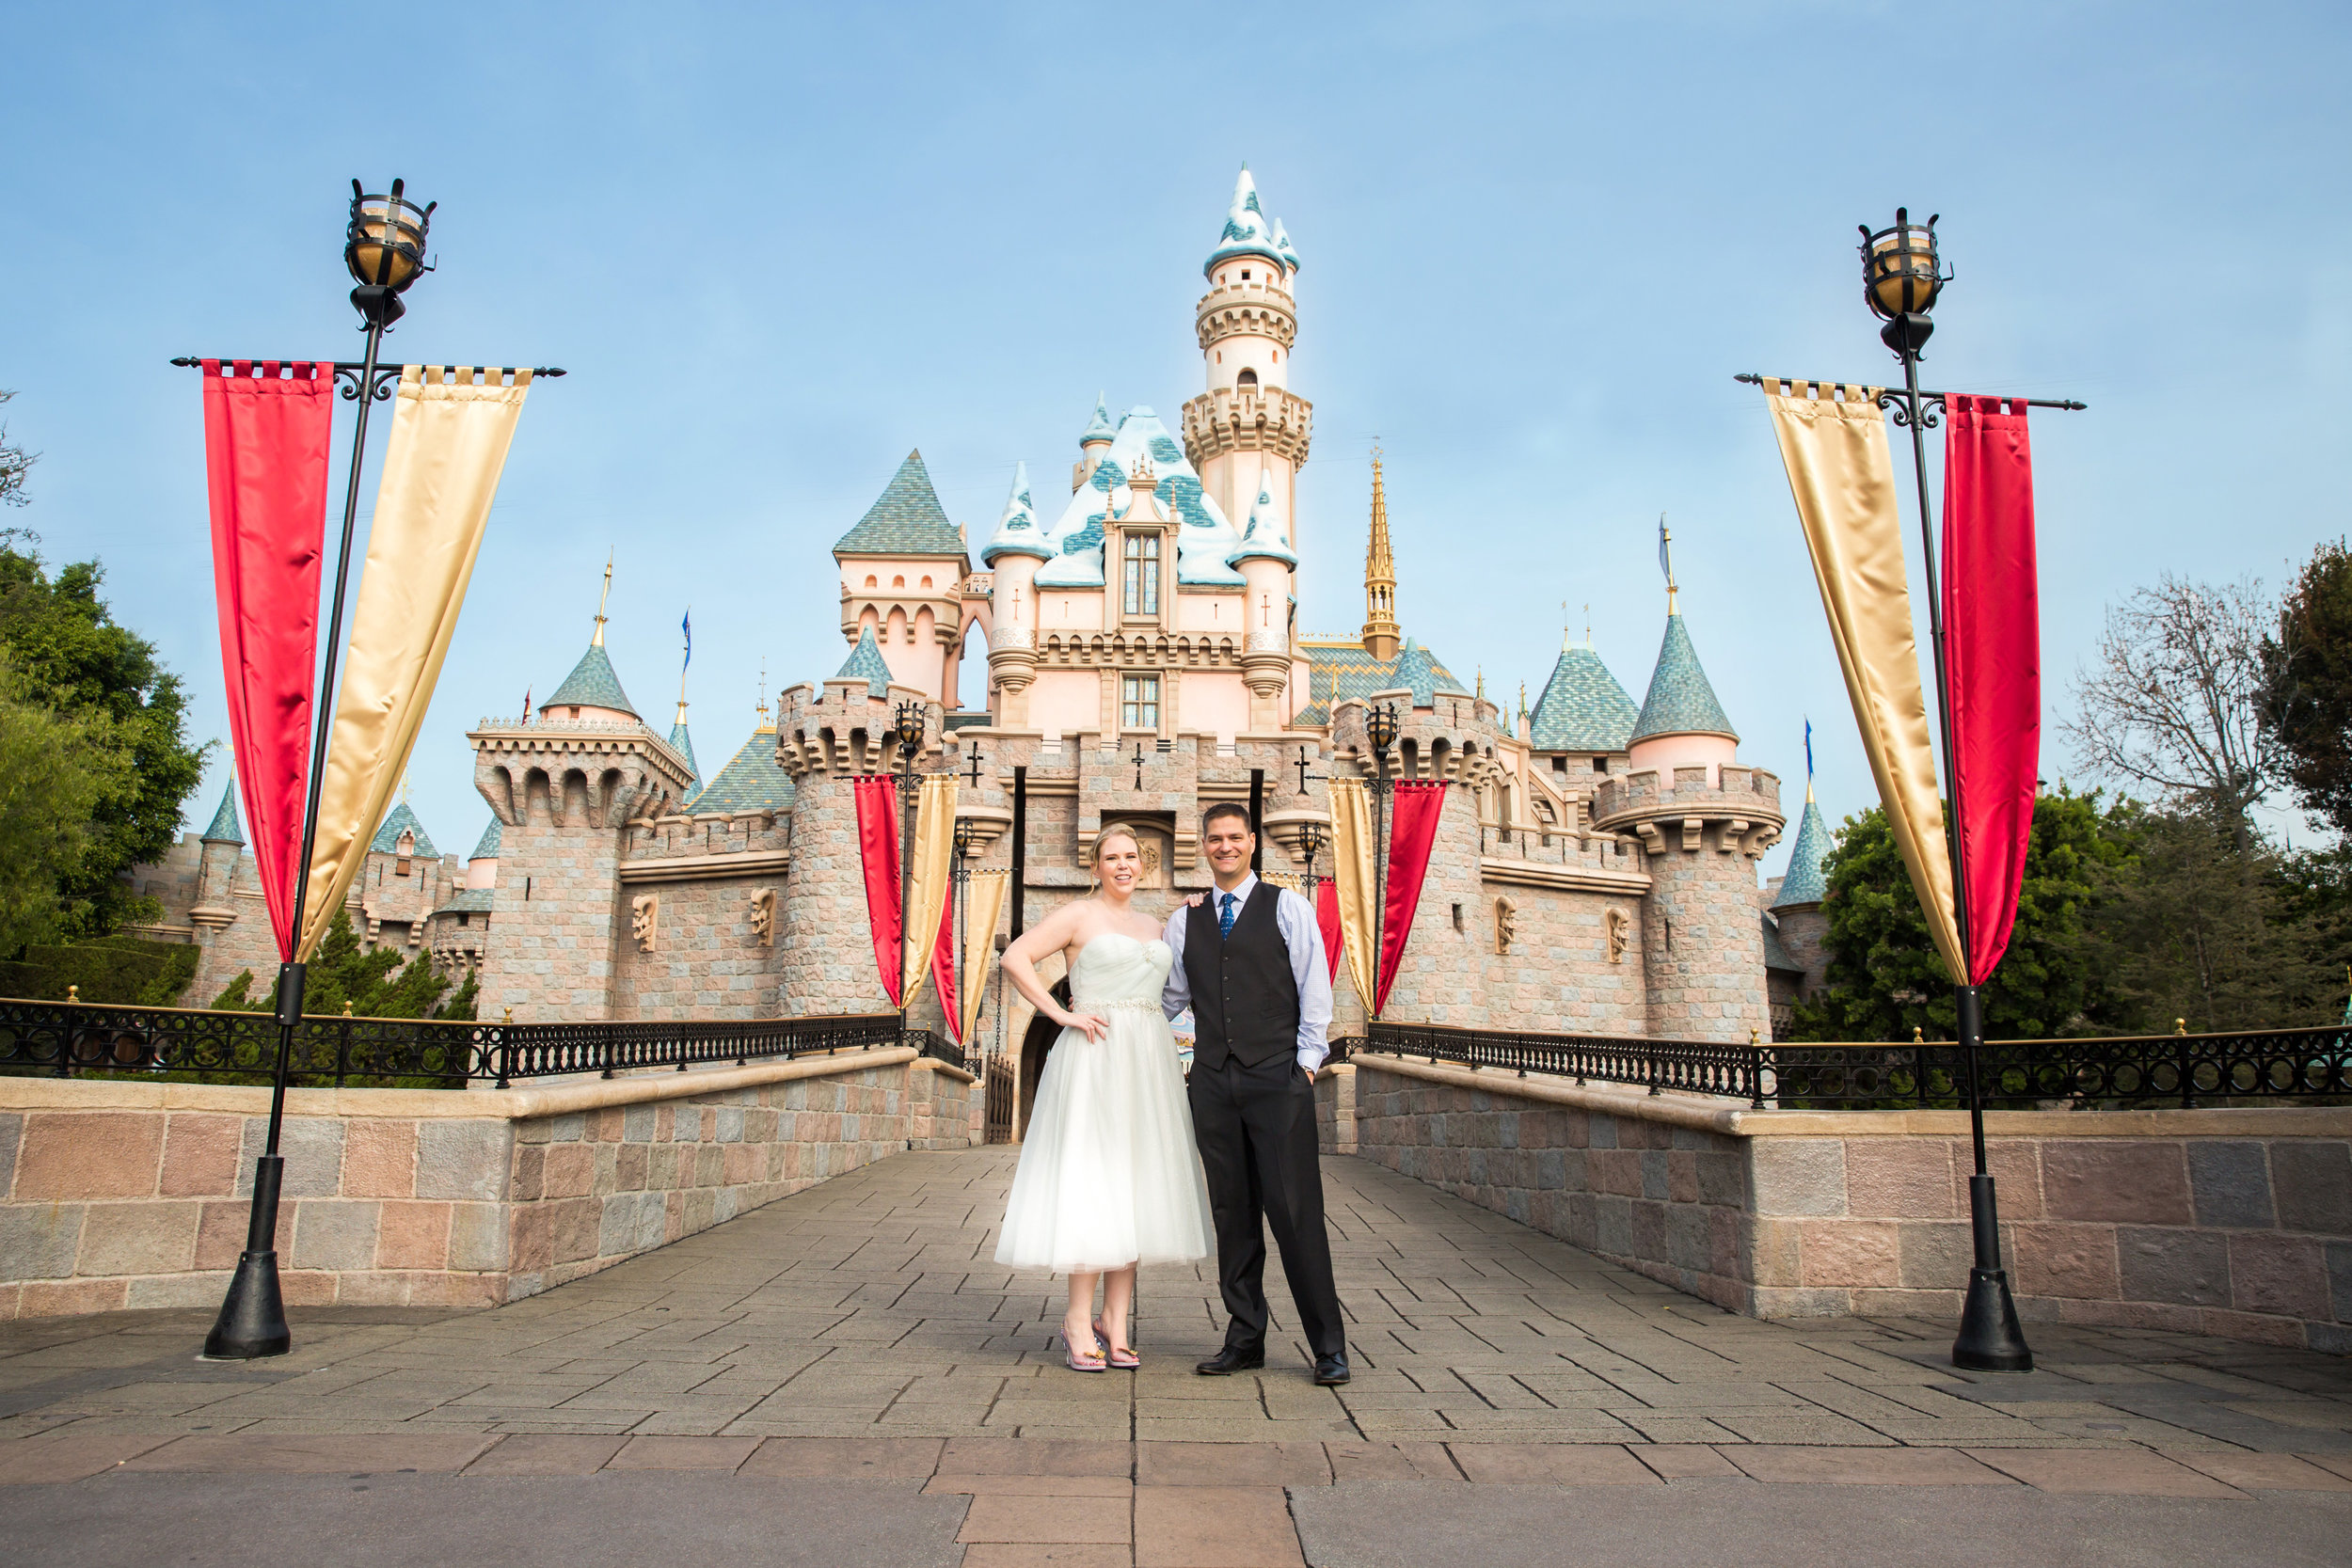 The most epic shot of all: front and center of Sleeping Beauty's Castle!